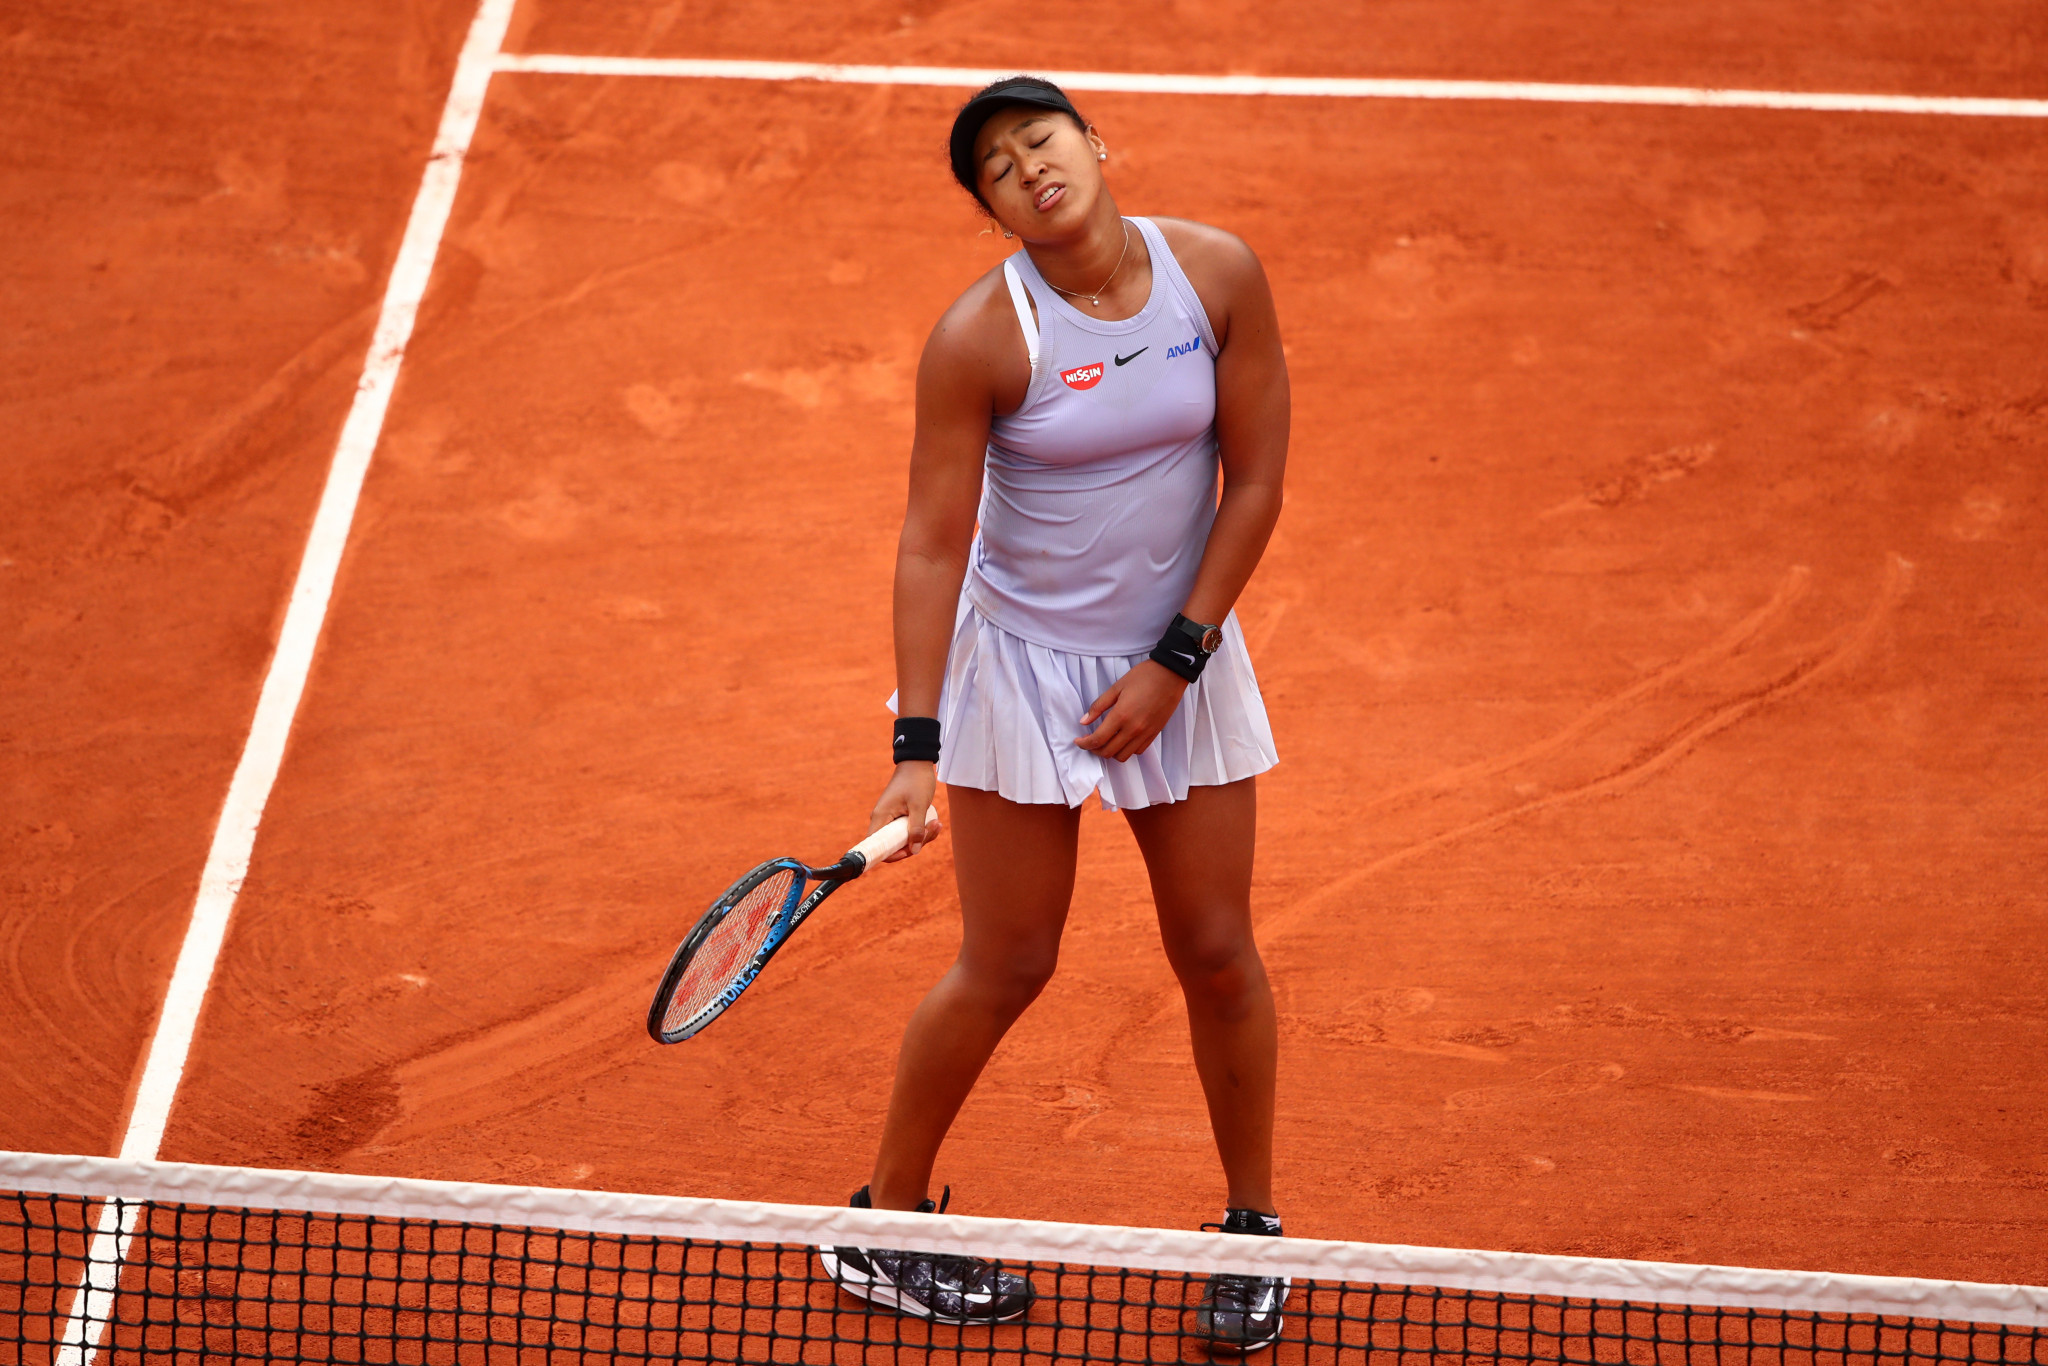 Naomi Osaka went through the doldrums before seeing off Azarenka at the French Open